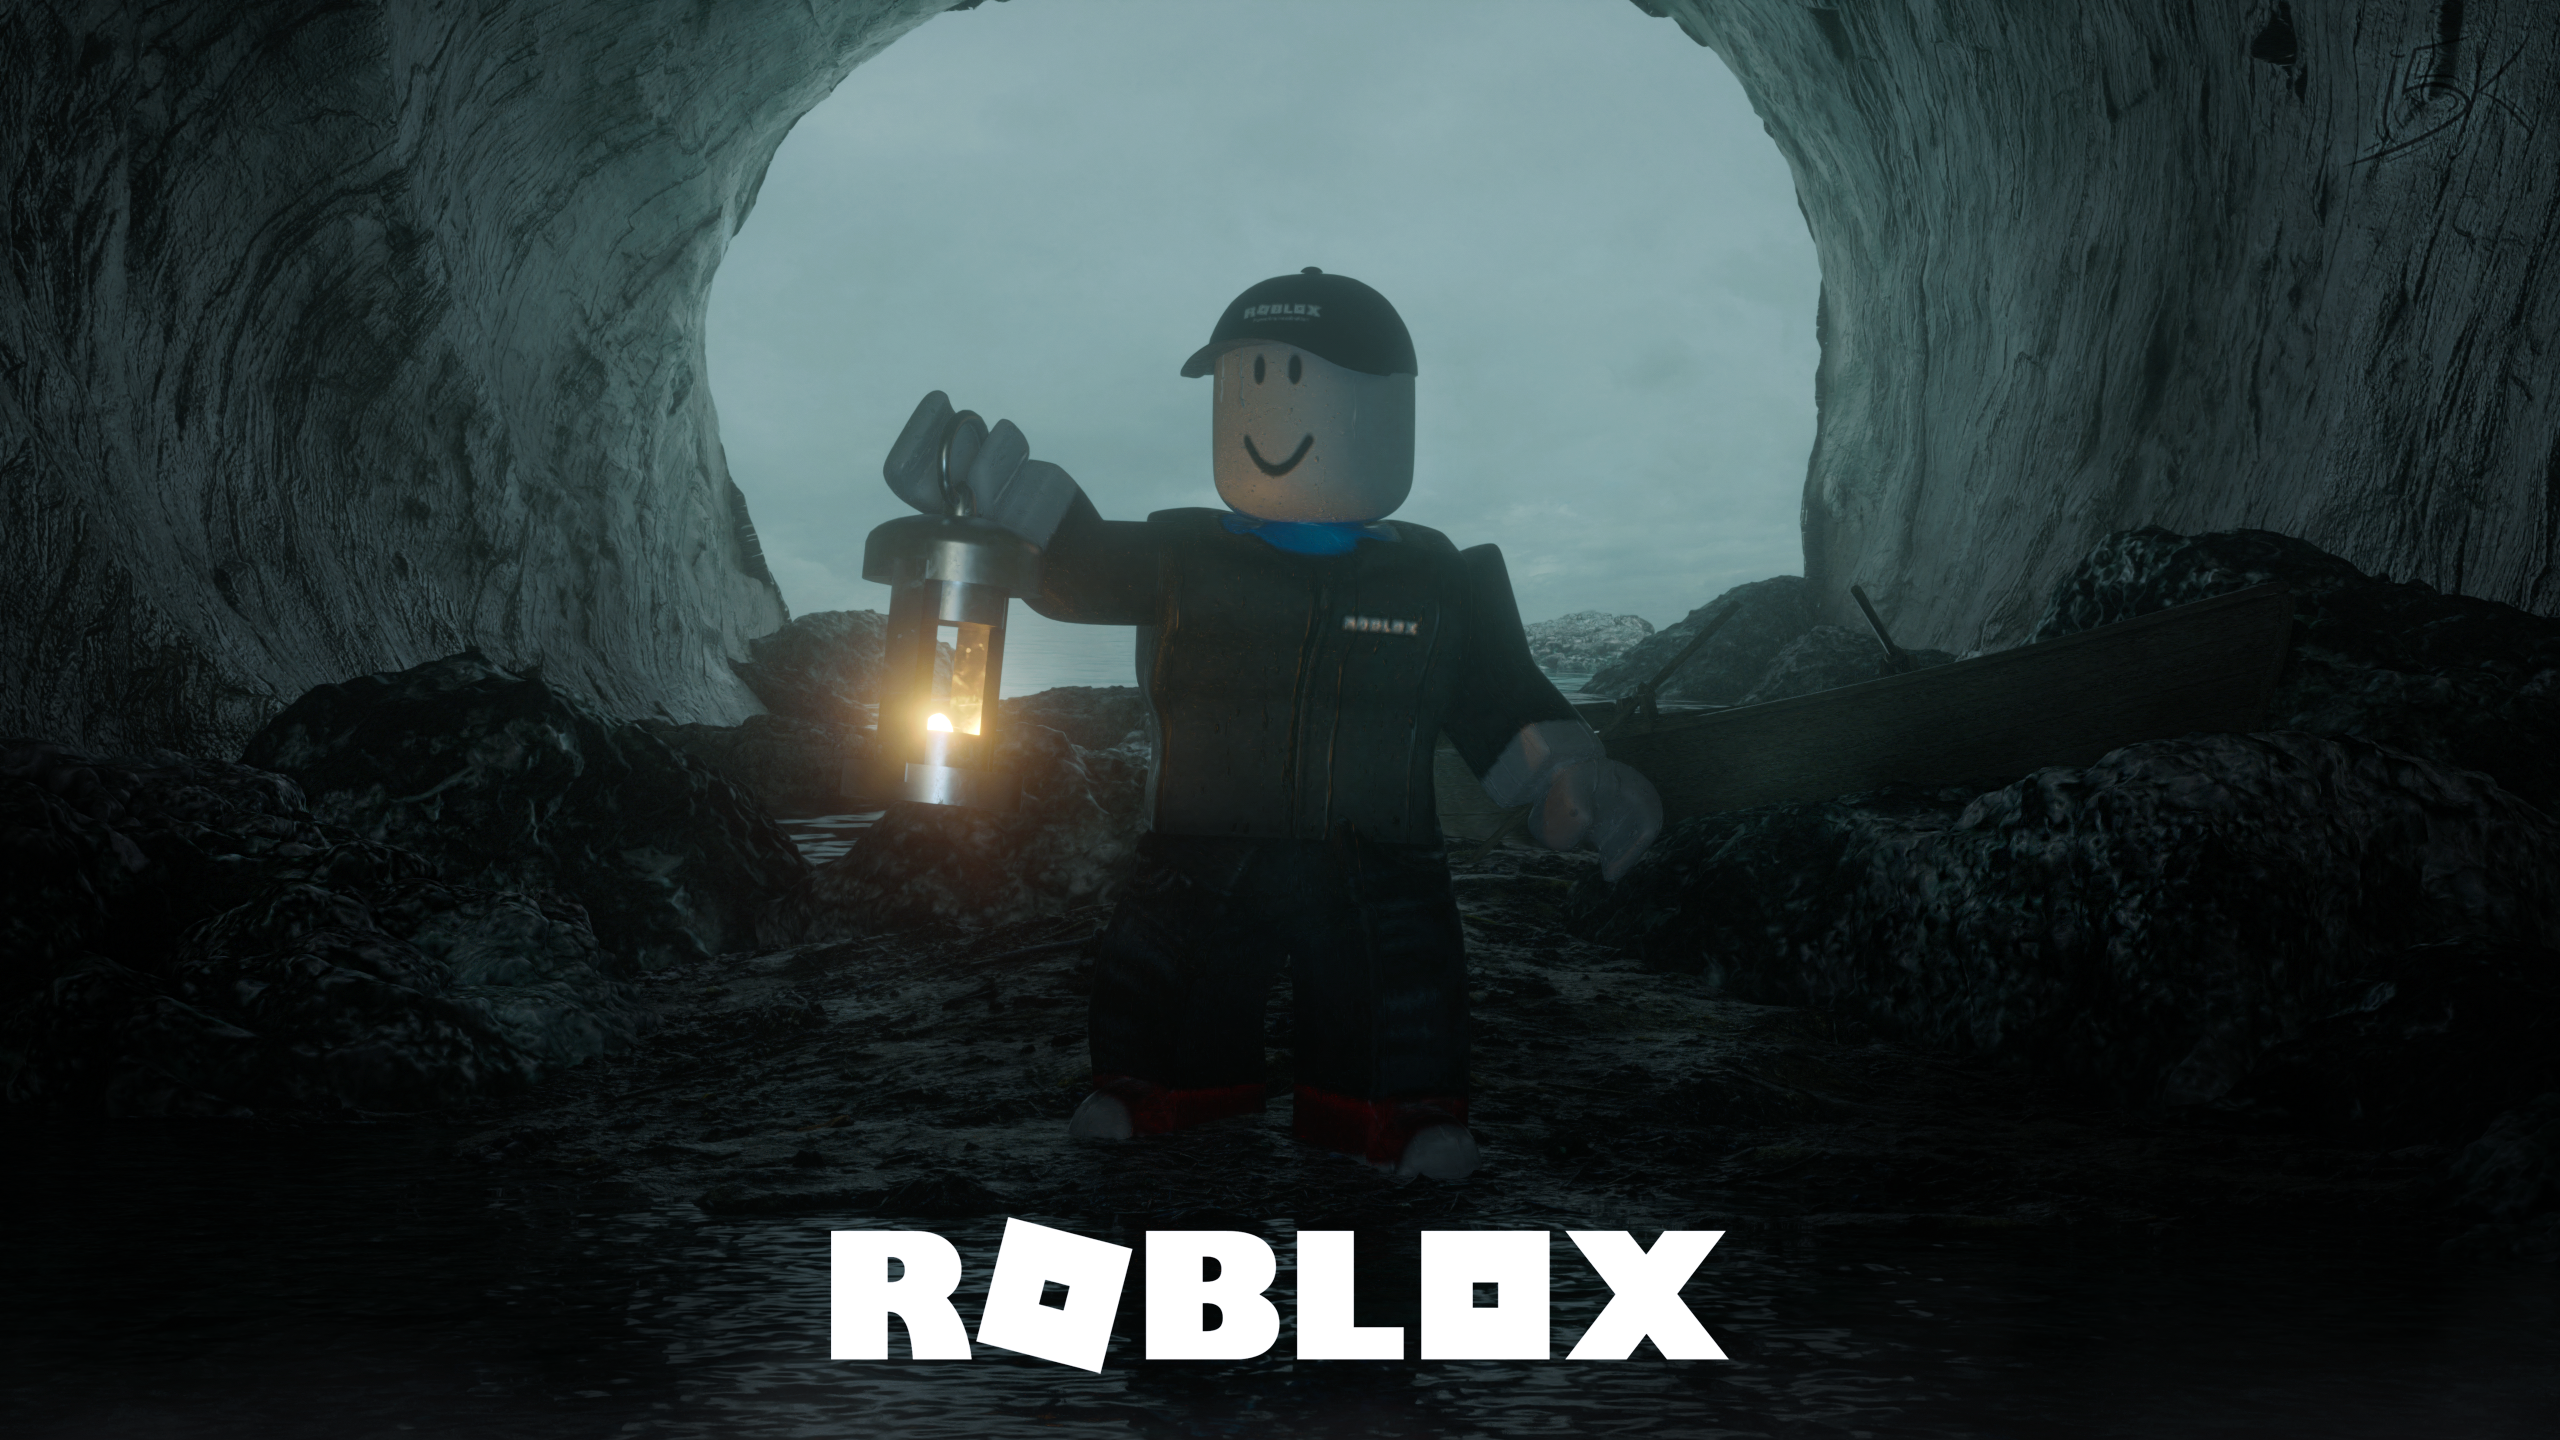 roblox logo black background